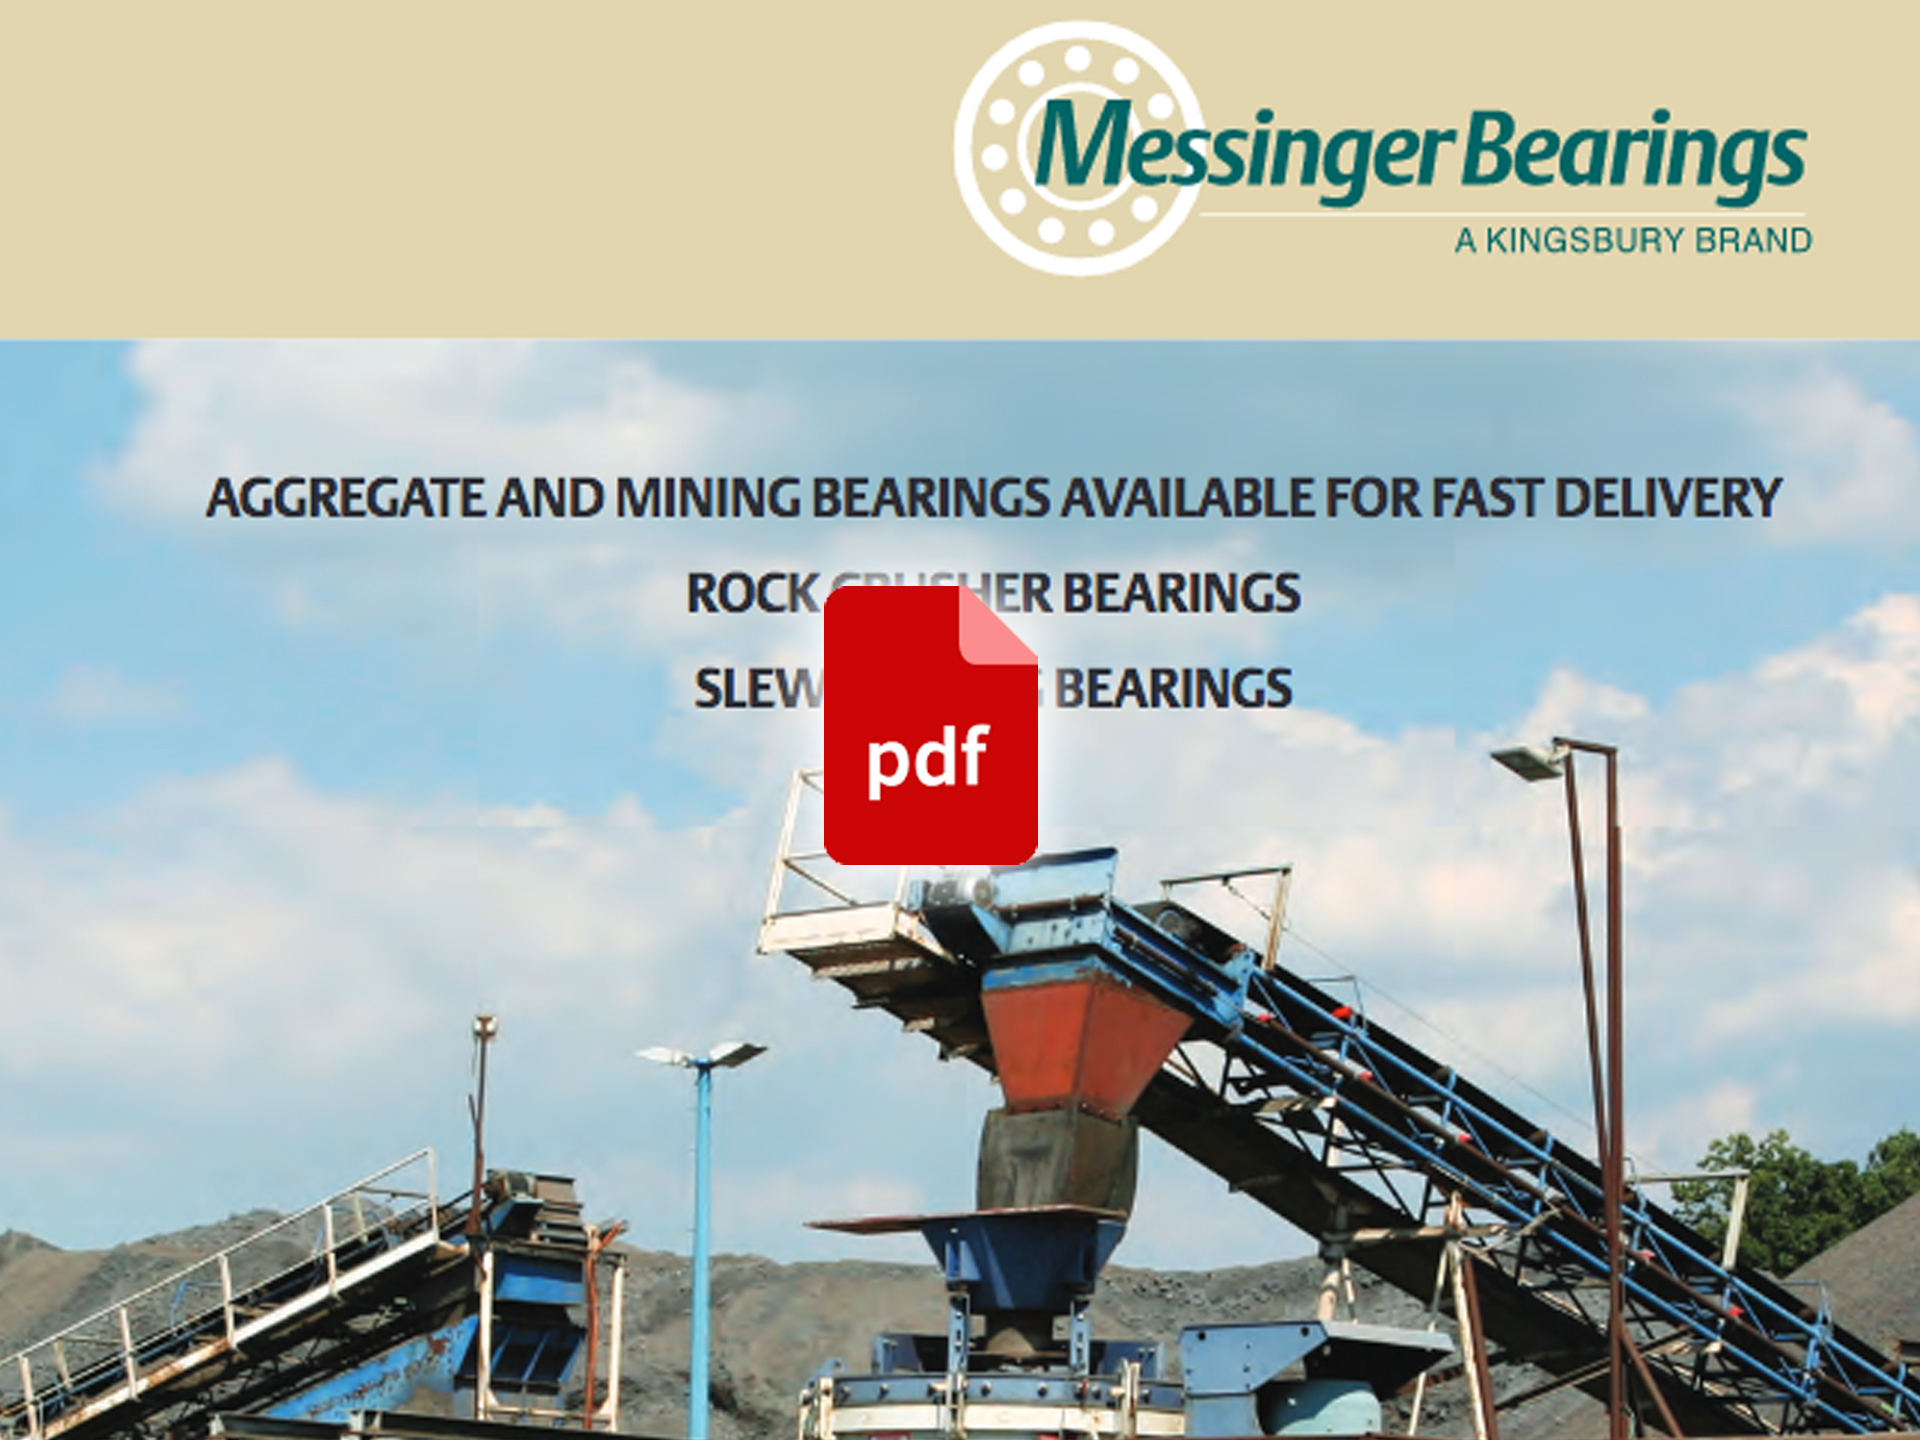 Crusher Bearings Brochure from Messinger | Aggregates and